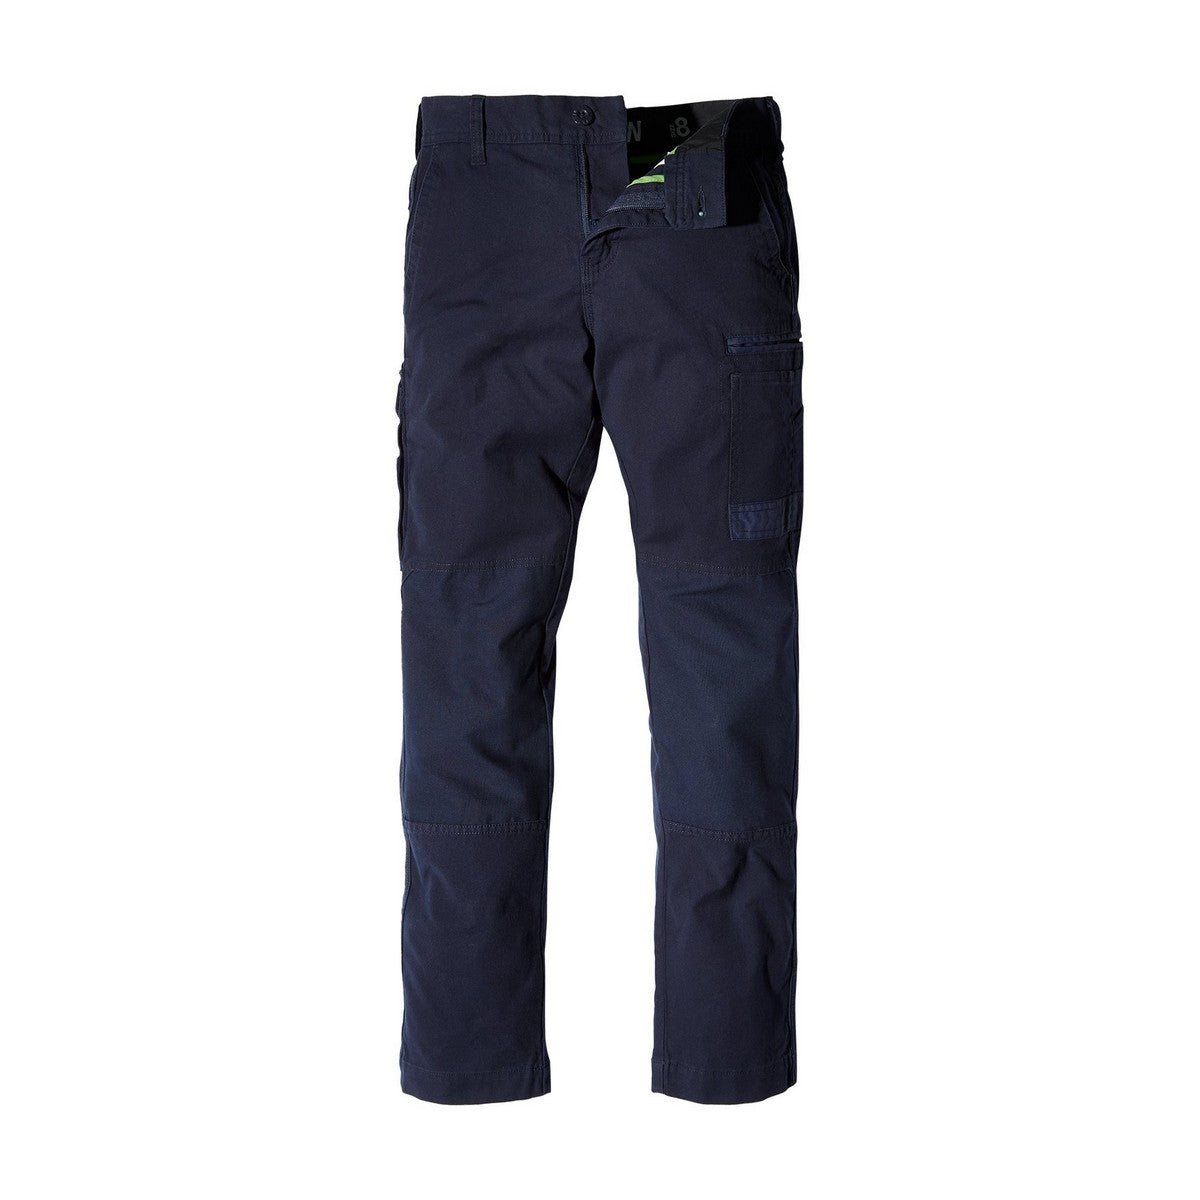 Image of FXD WP-3W Womens Pants